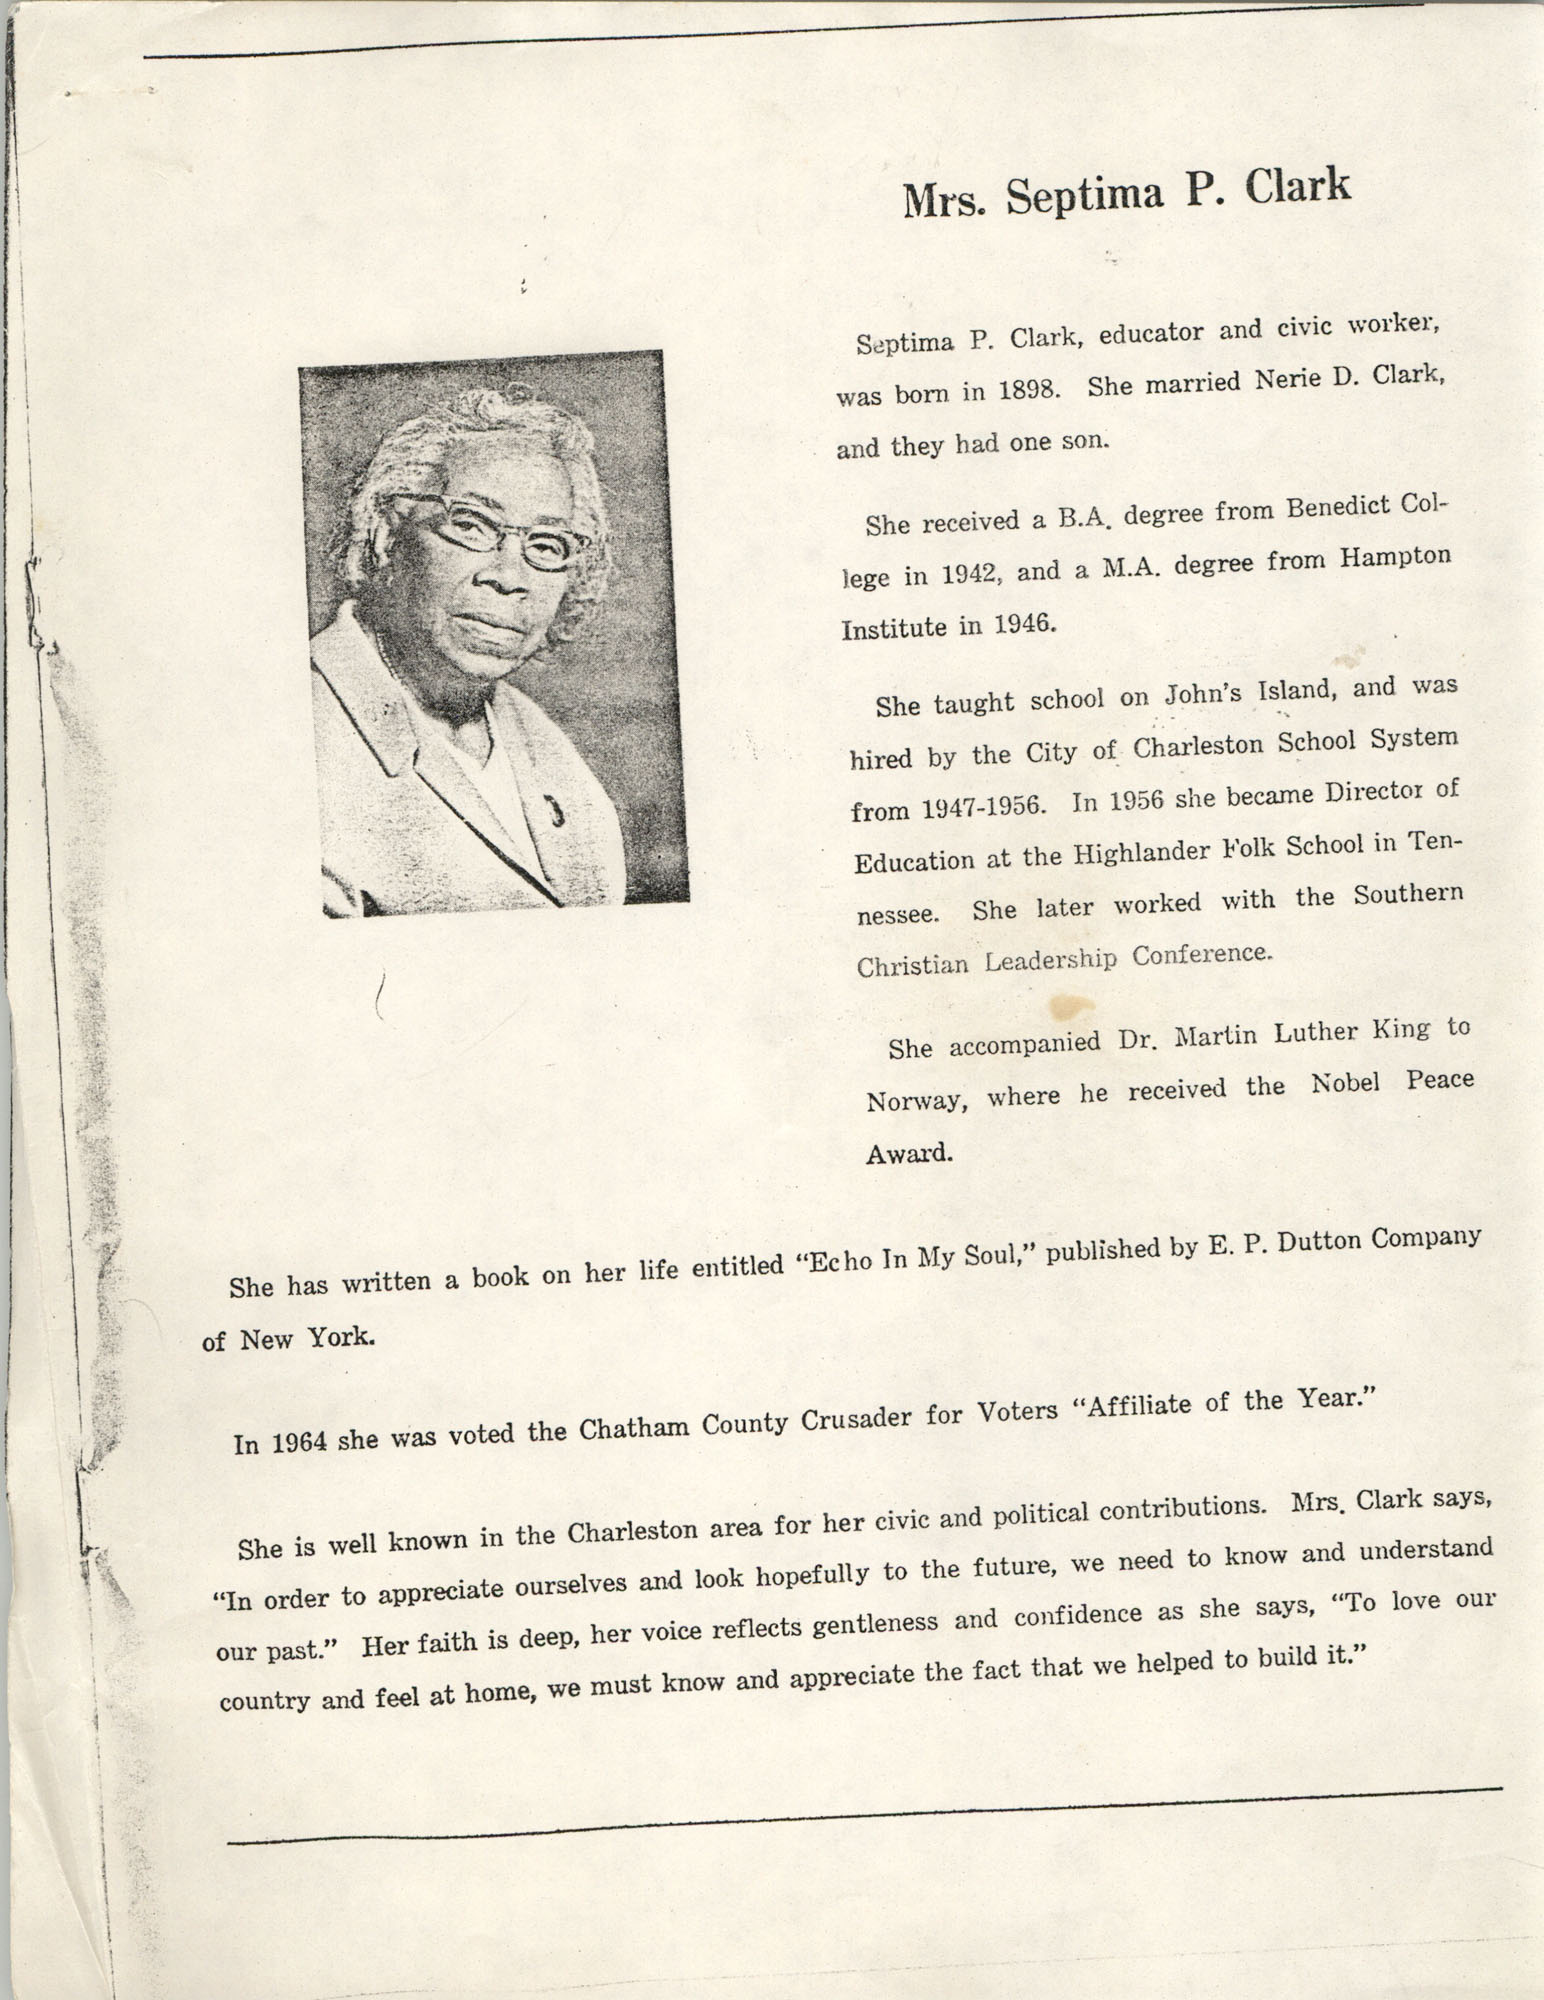 Biographical Sketch of Mrs. Septima P. Clark